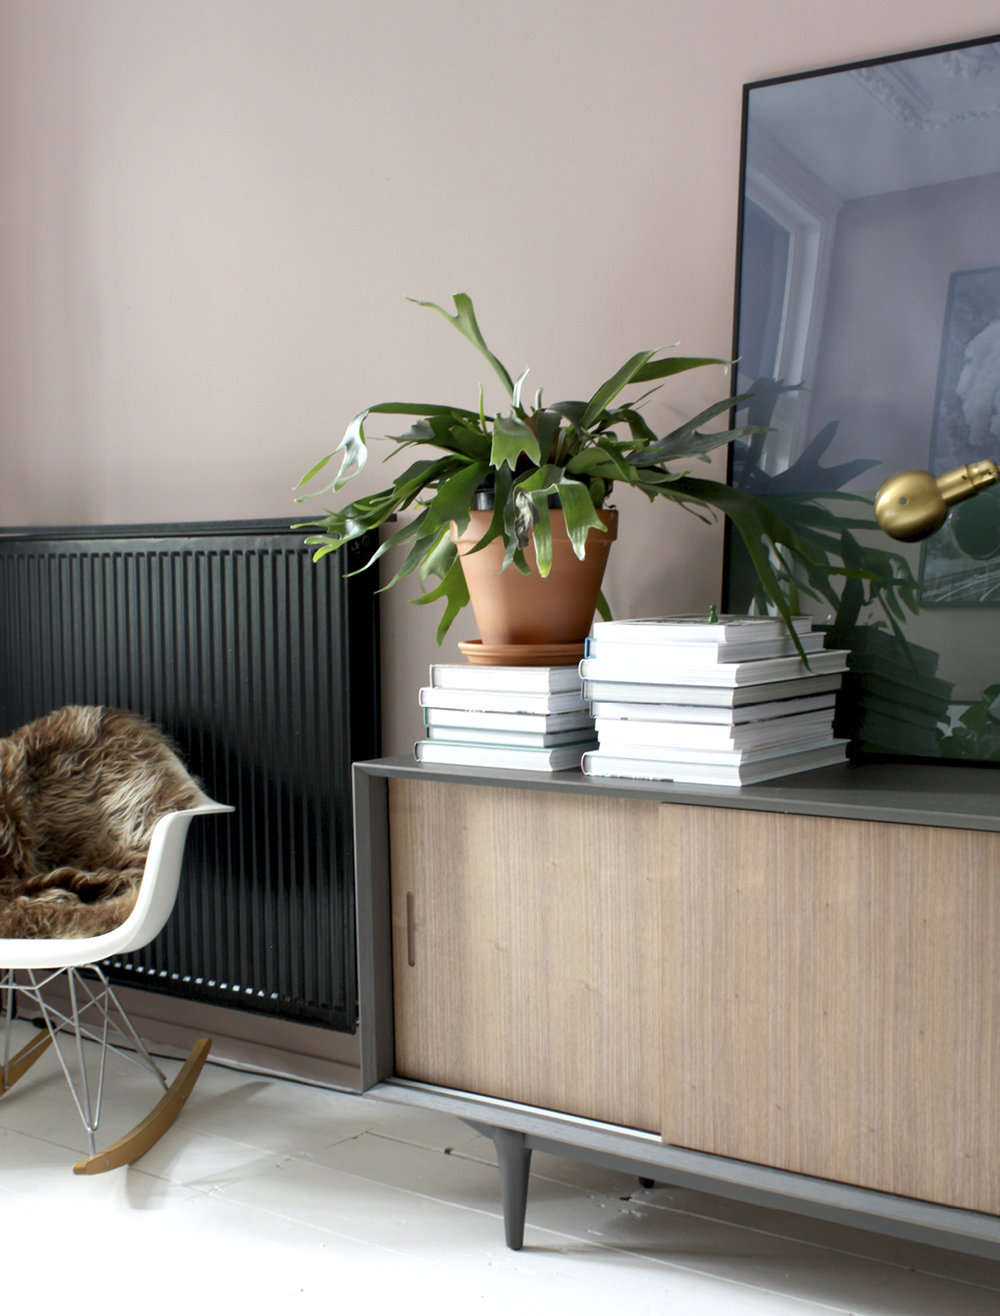 THE NICE STUFF COLLECTOR INTERIOR BLOG INTERIEUR BLOG THEO-BERT POT NETHERLANDS HOLLAND BLOG BEELD STAAND RUIJCH__3.jpg